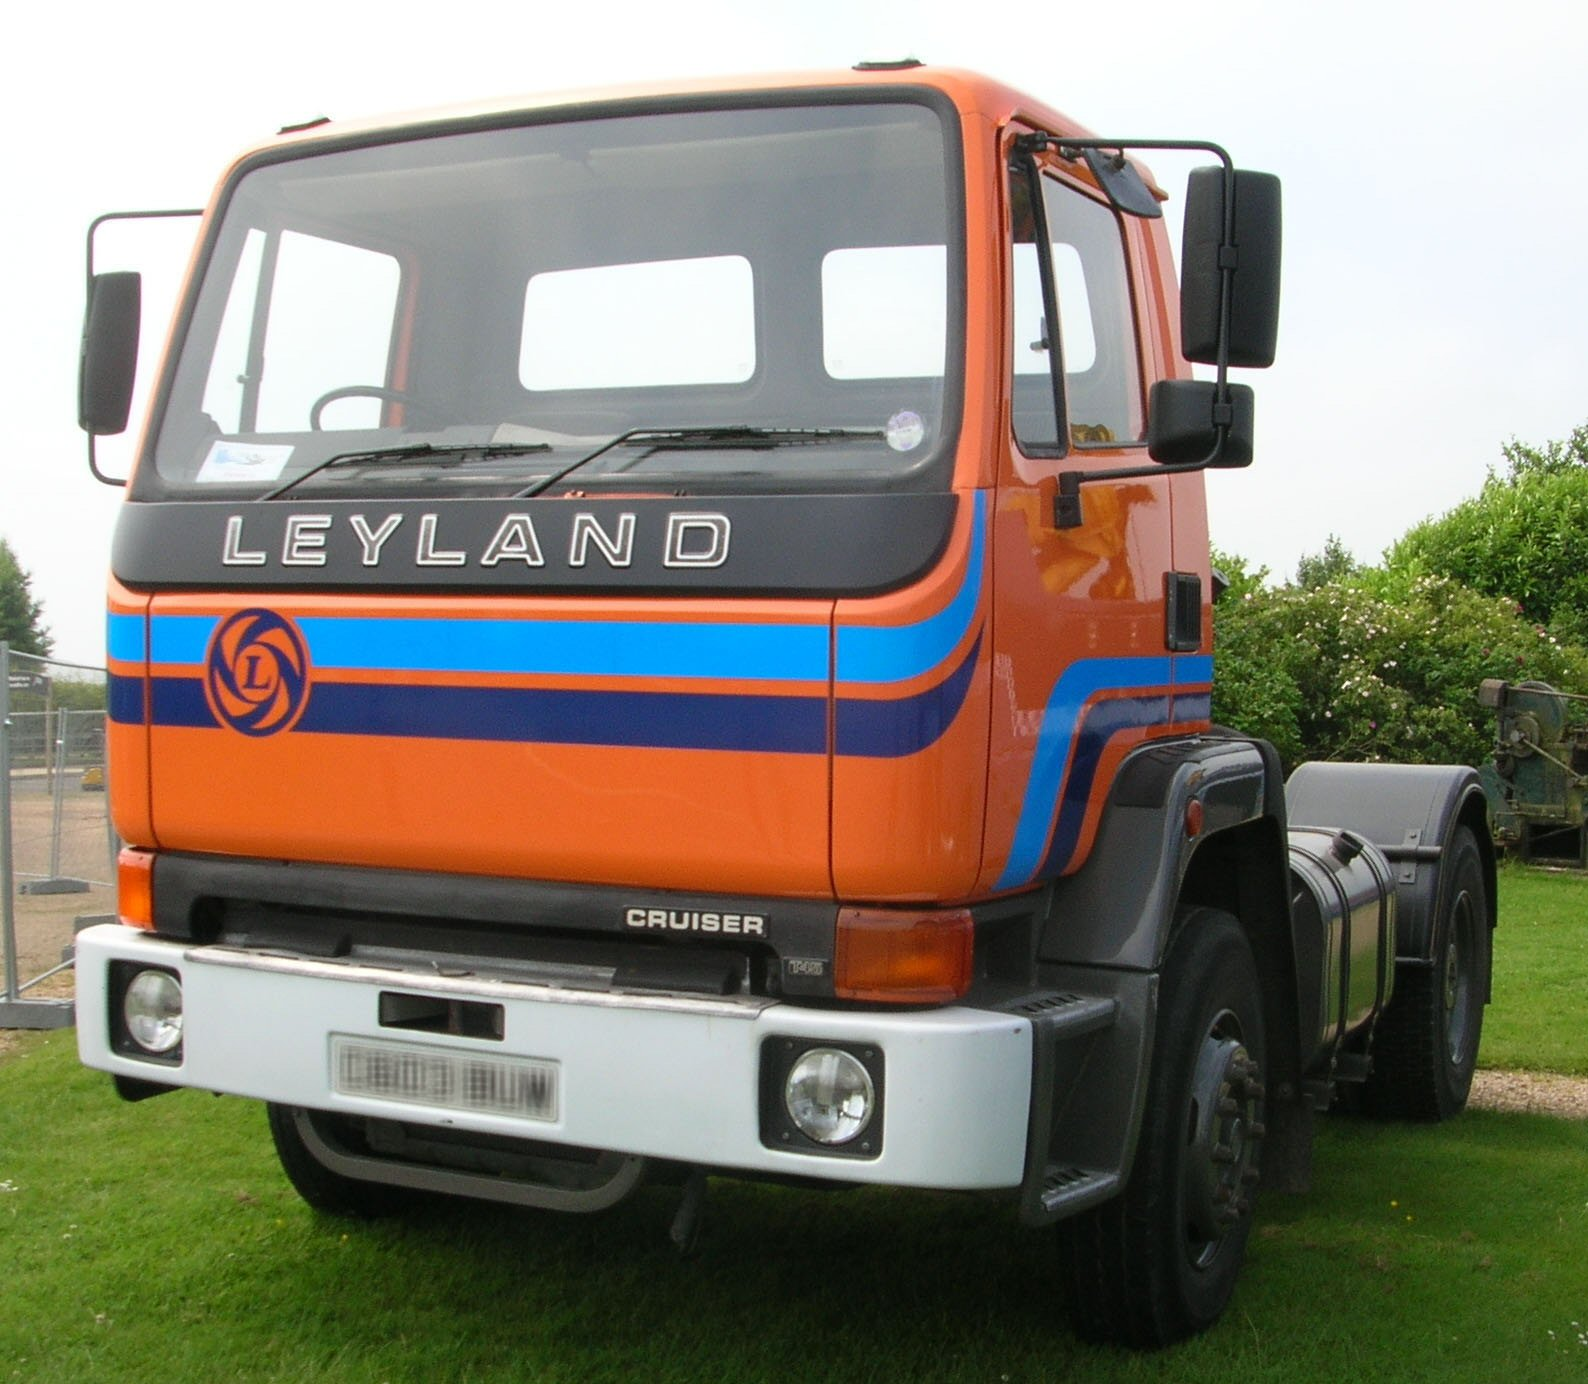 Old Leyland Trucks - Lorries - Simplyeighties.com